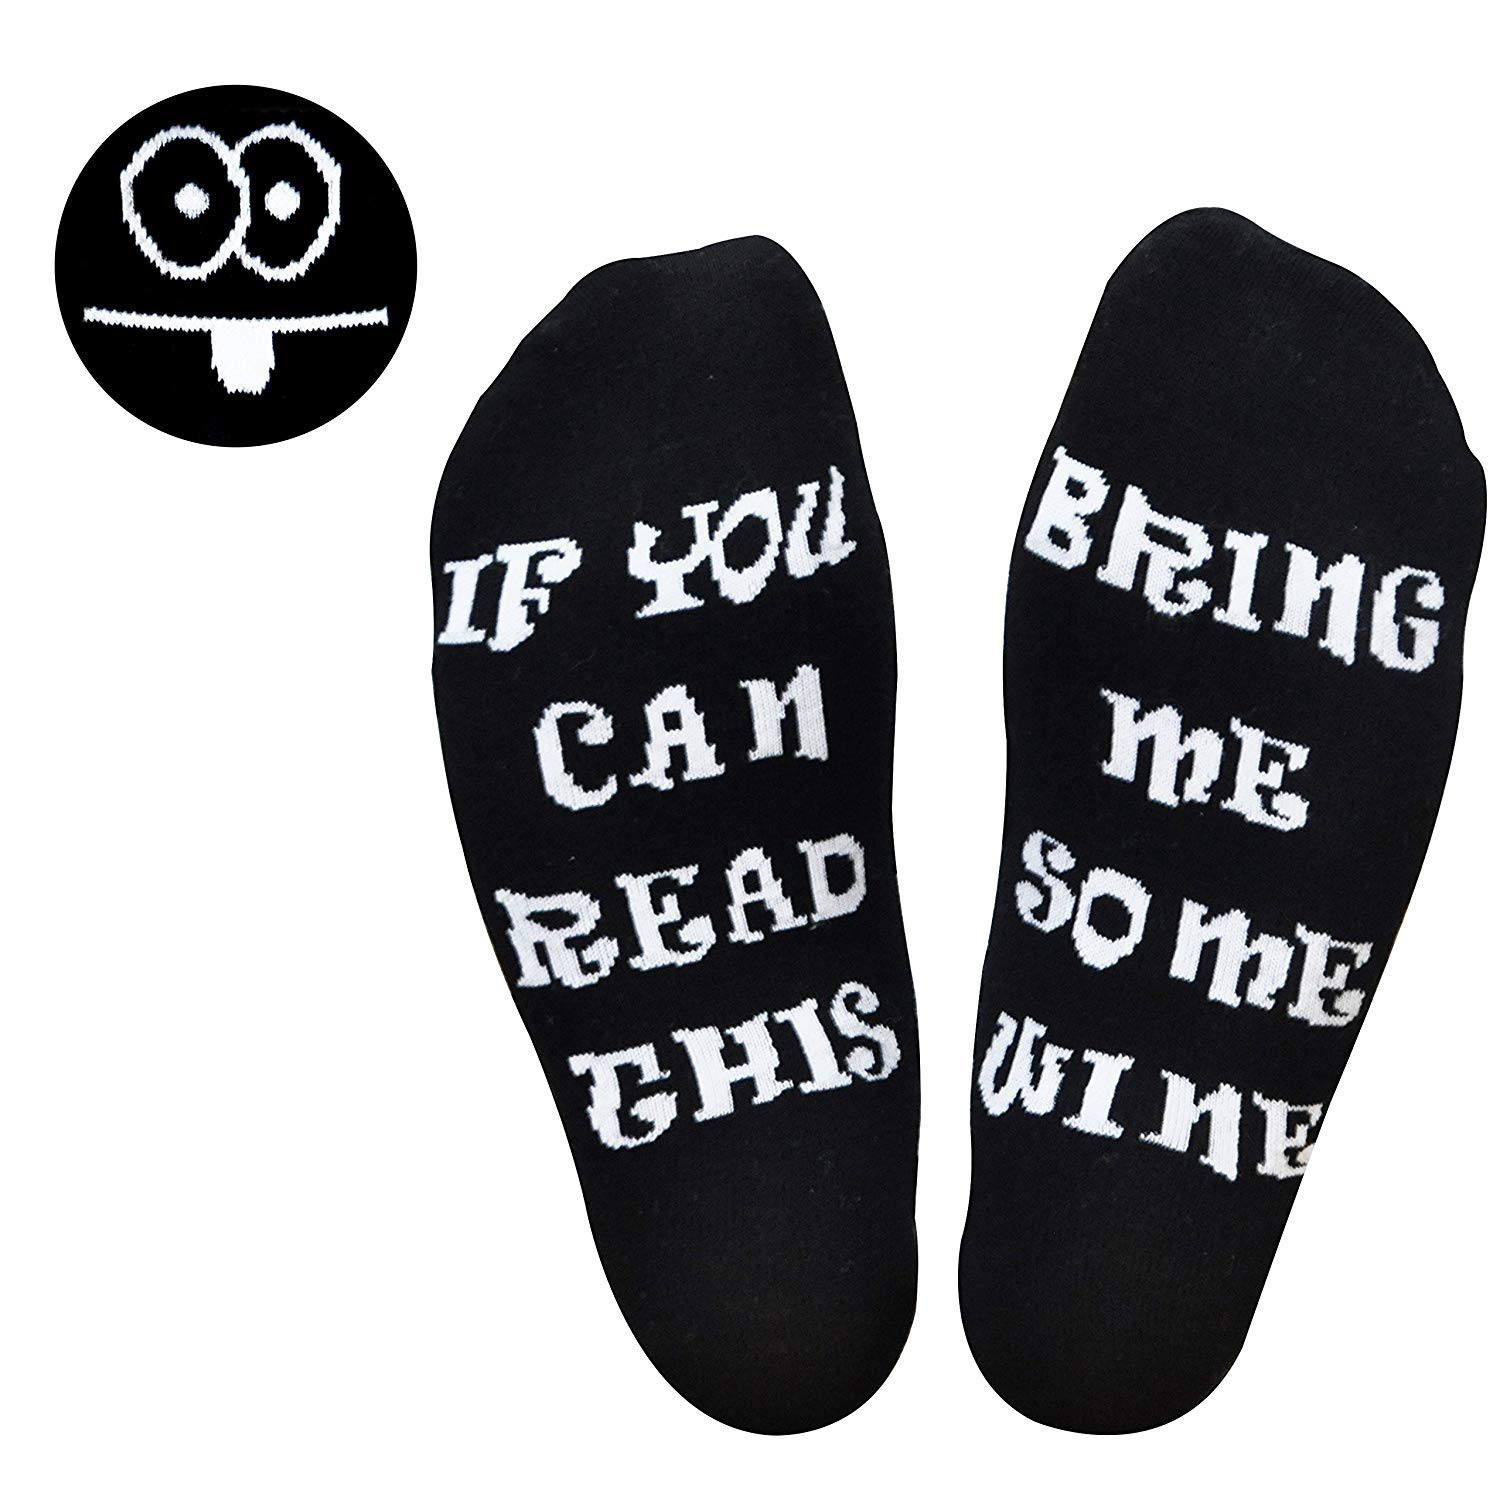 GoldWorld Novelty Cotton Wine Socks Birthday Gifts for Women/Mom/Men w/Funny Saying If You Can Read This Bring Me a Glass of Wine Sock for 30th/40th/50th/60th/70th Birthday Retirement Gifts (White)